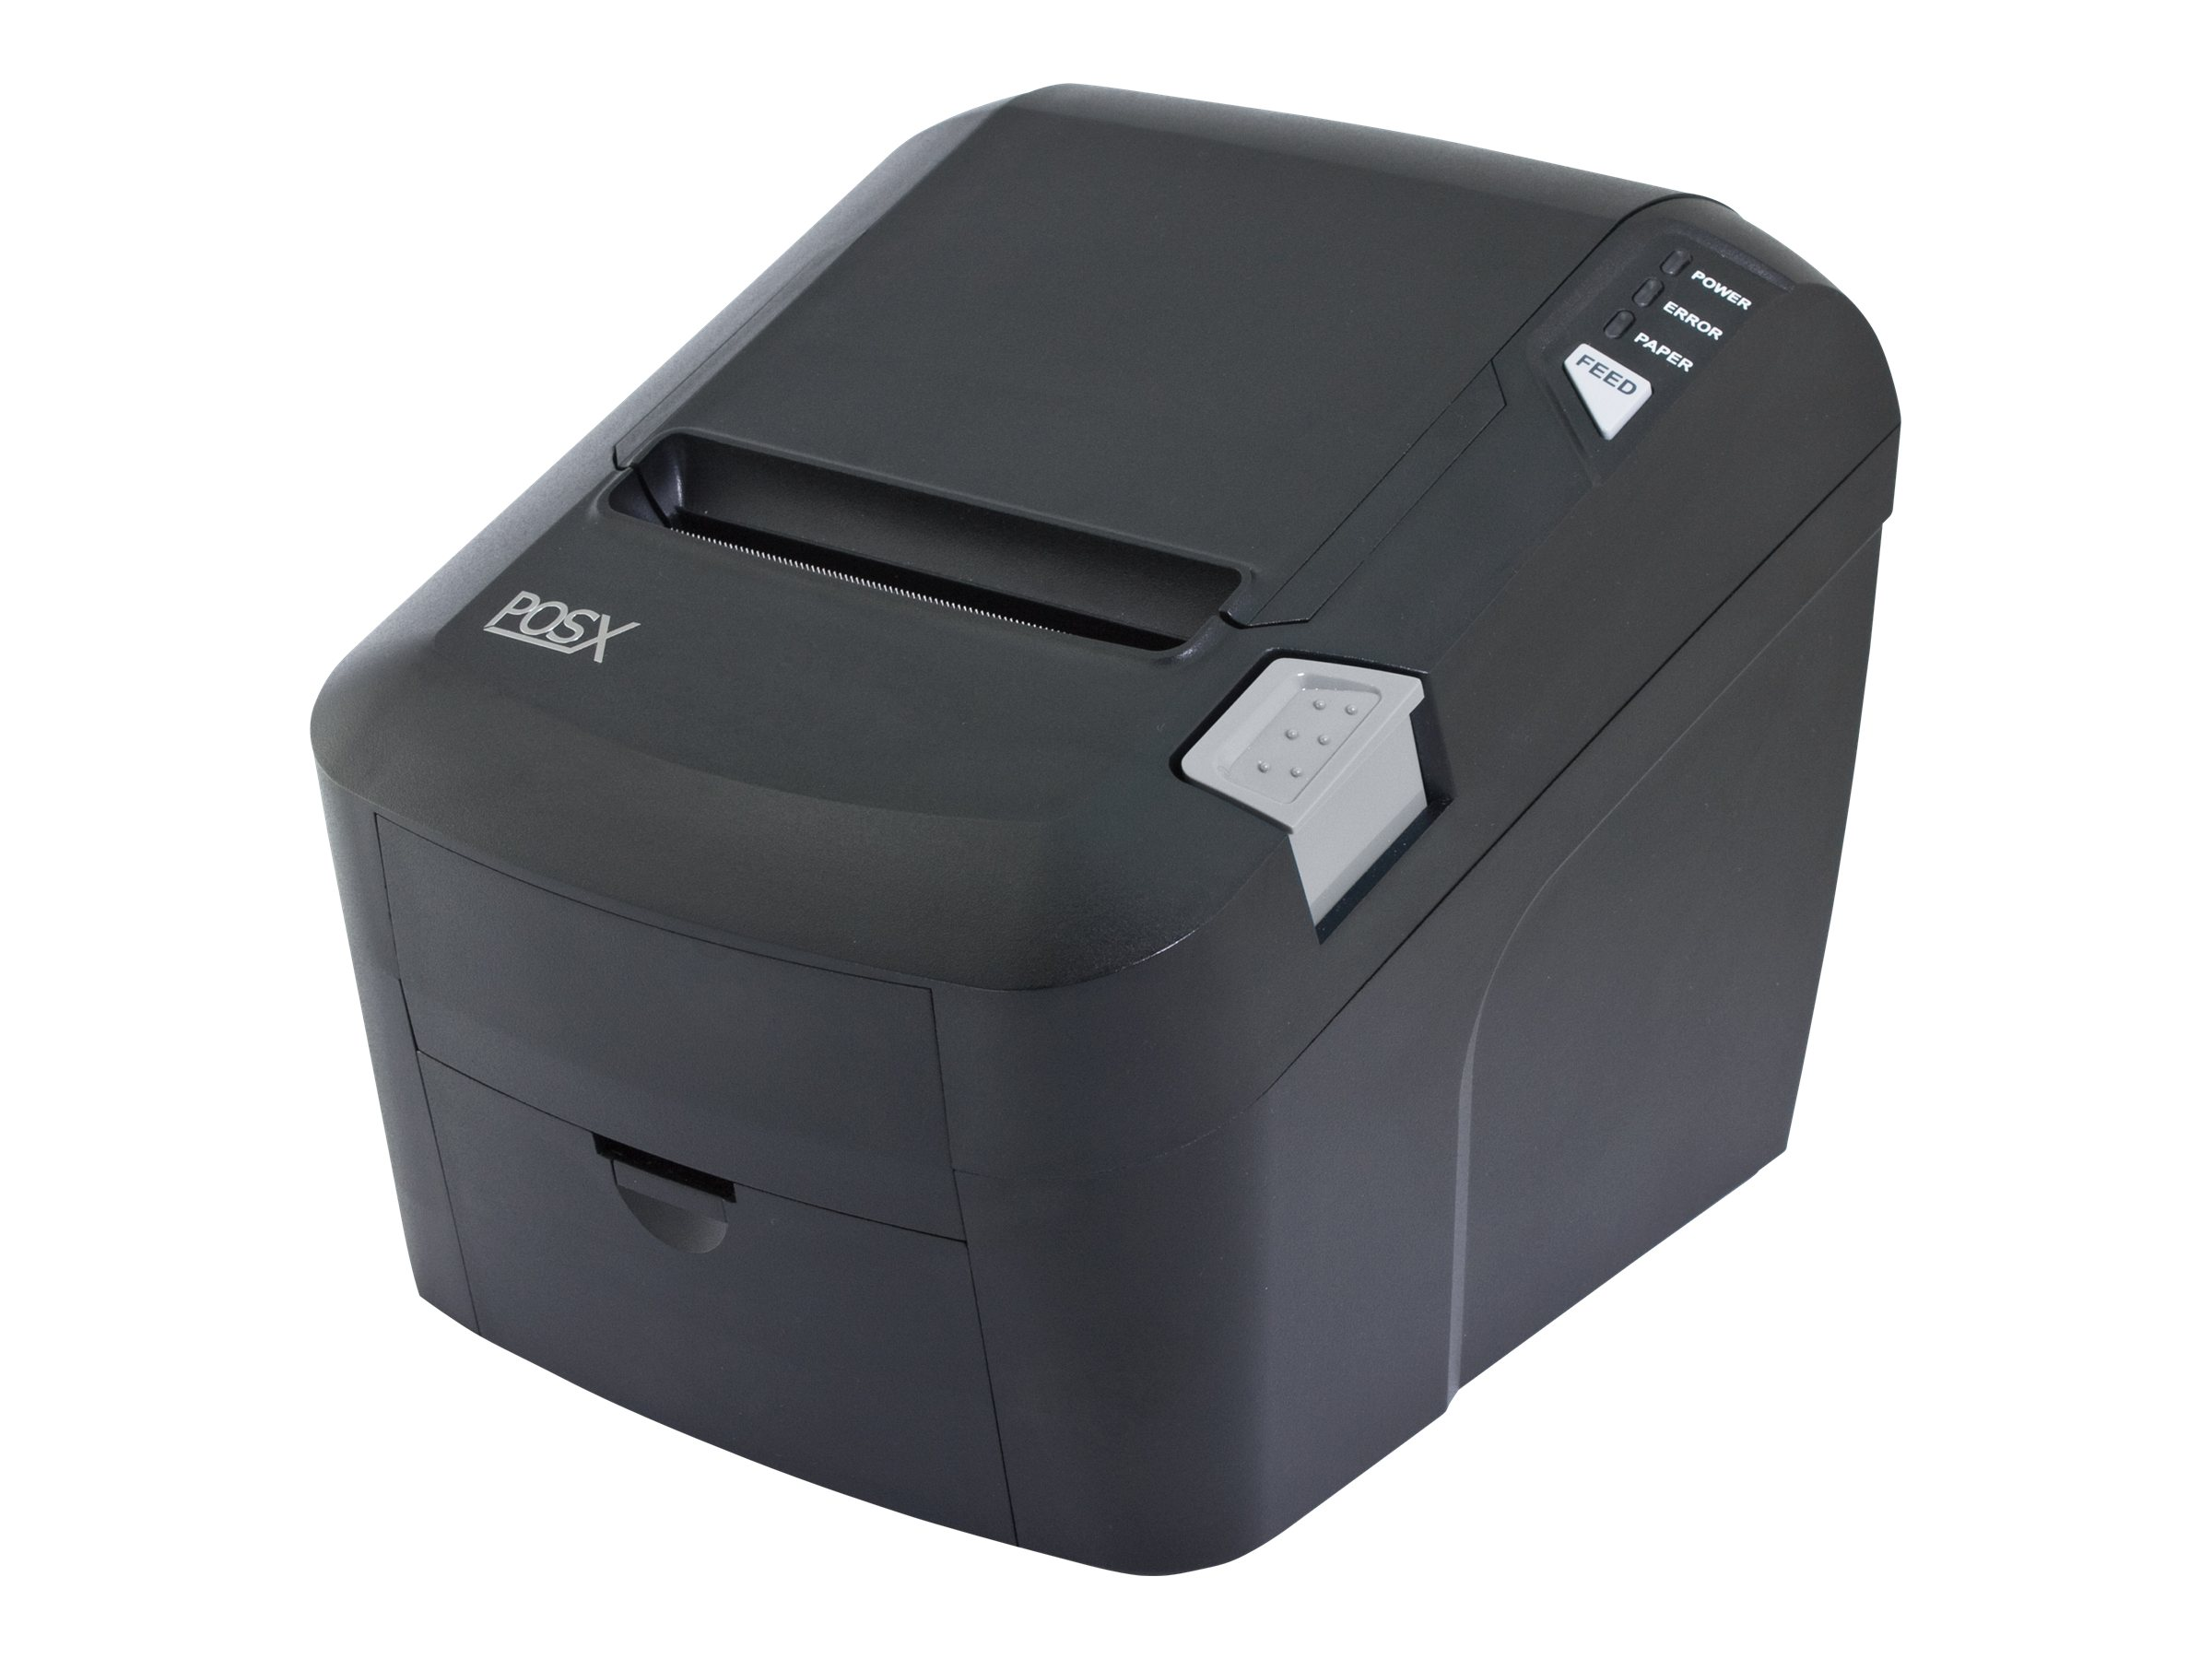 Pos-X EVO HiSpeed USB Ethernet Thermal Receipt Printer - Black, EVO-PT3-1HUE, 16021535, Printers - POS Receipt